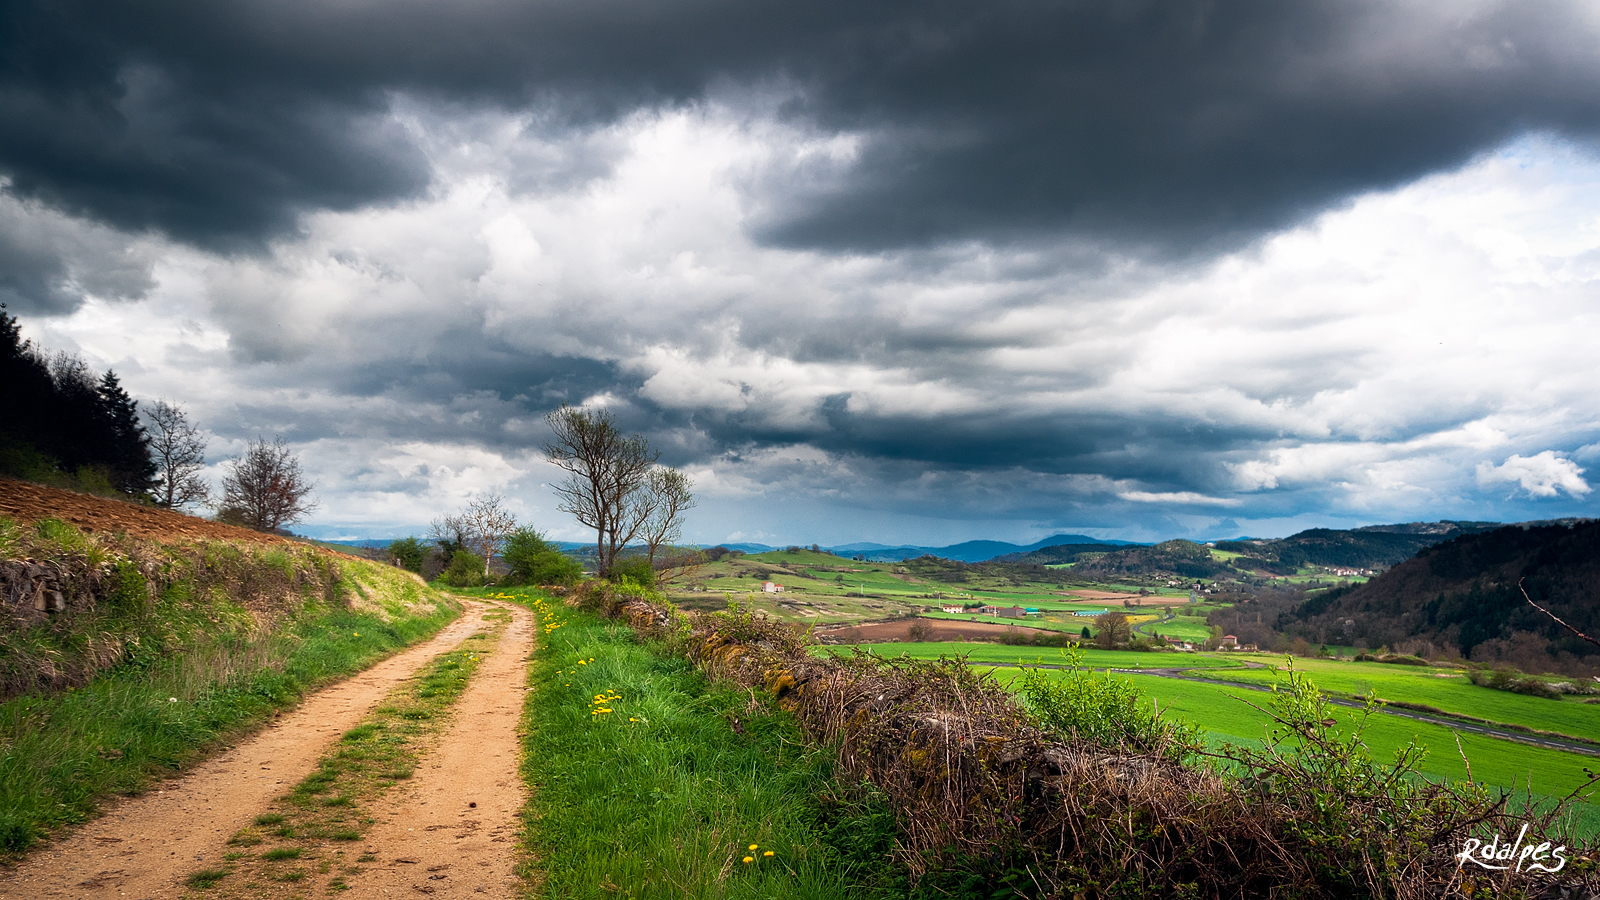 campagne by rdalpes